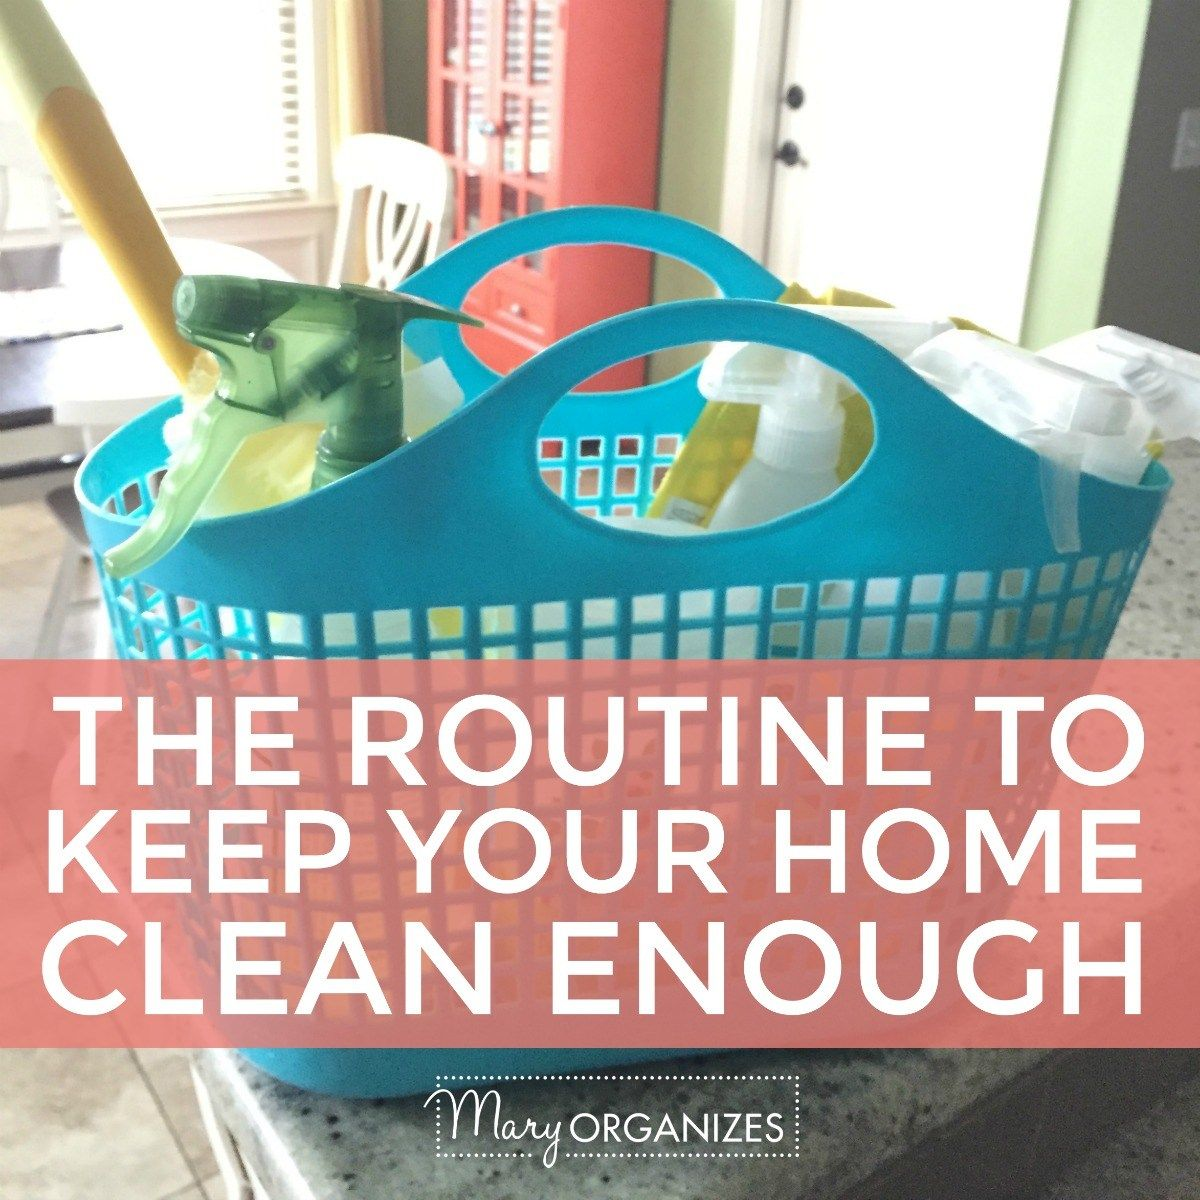 The Routine to Keep Your Home Clean Enough -s